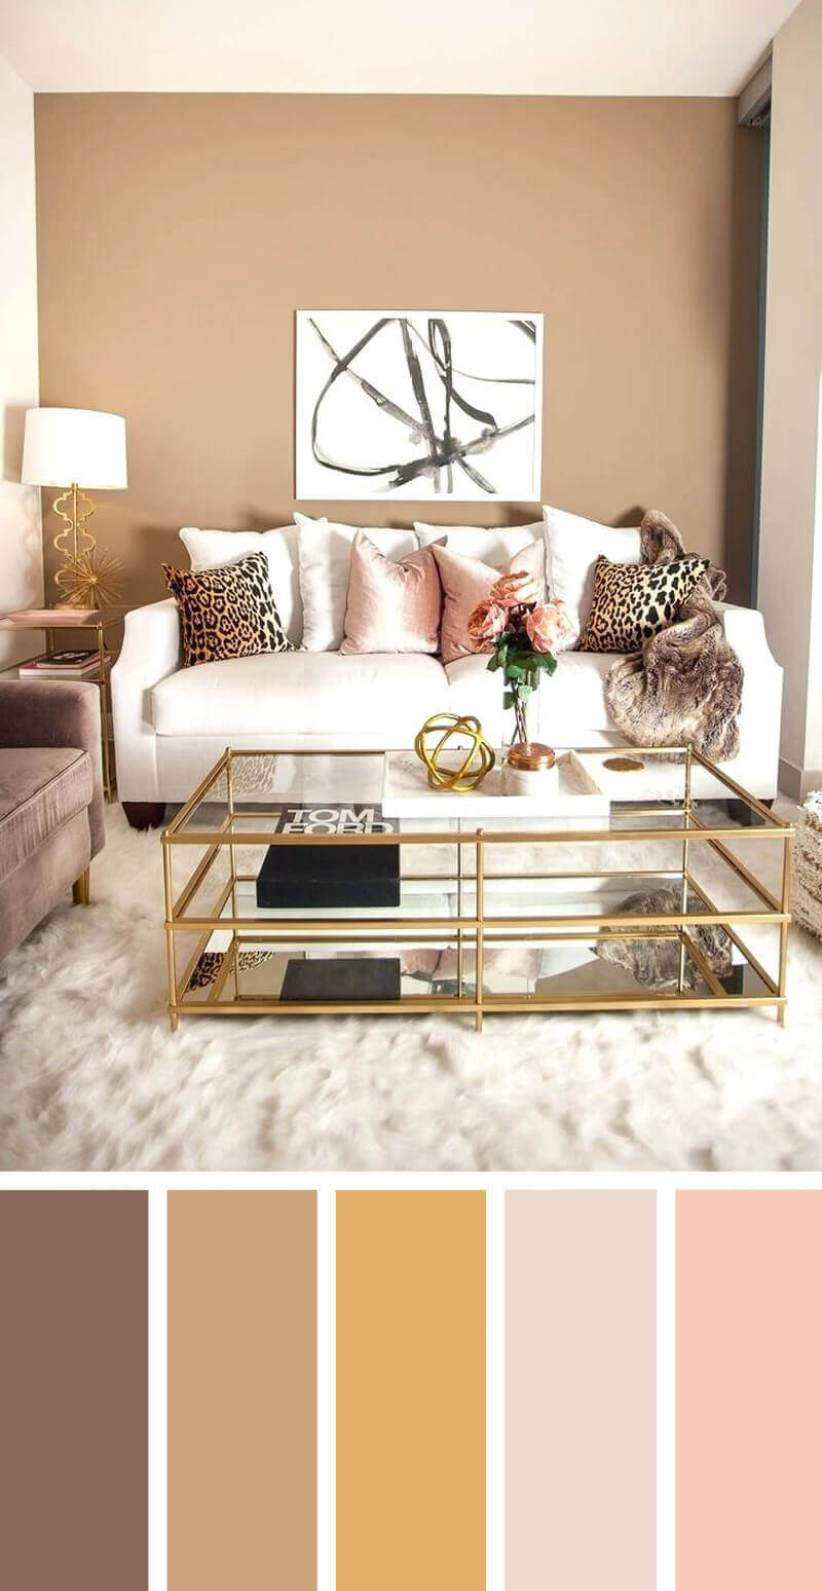 Wonderful colour combination of living room walls #livingroomcolorschemes #livingroomcolorcombination